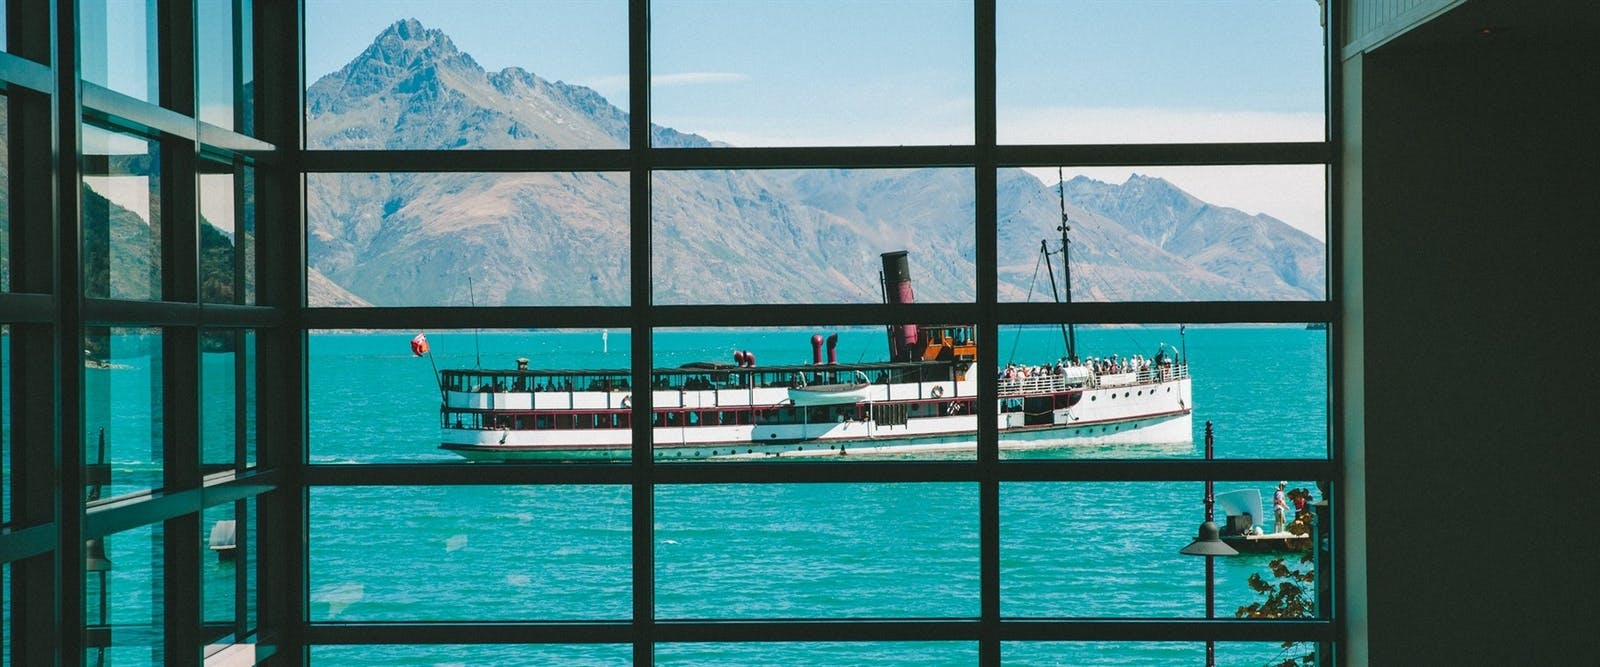 View from Eichardt's Private Hotel, New Zealand